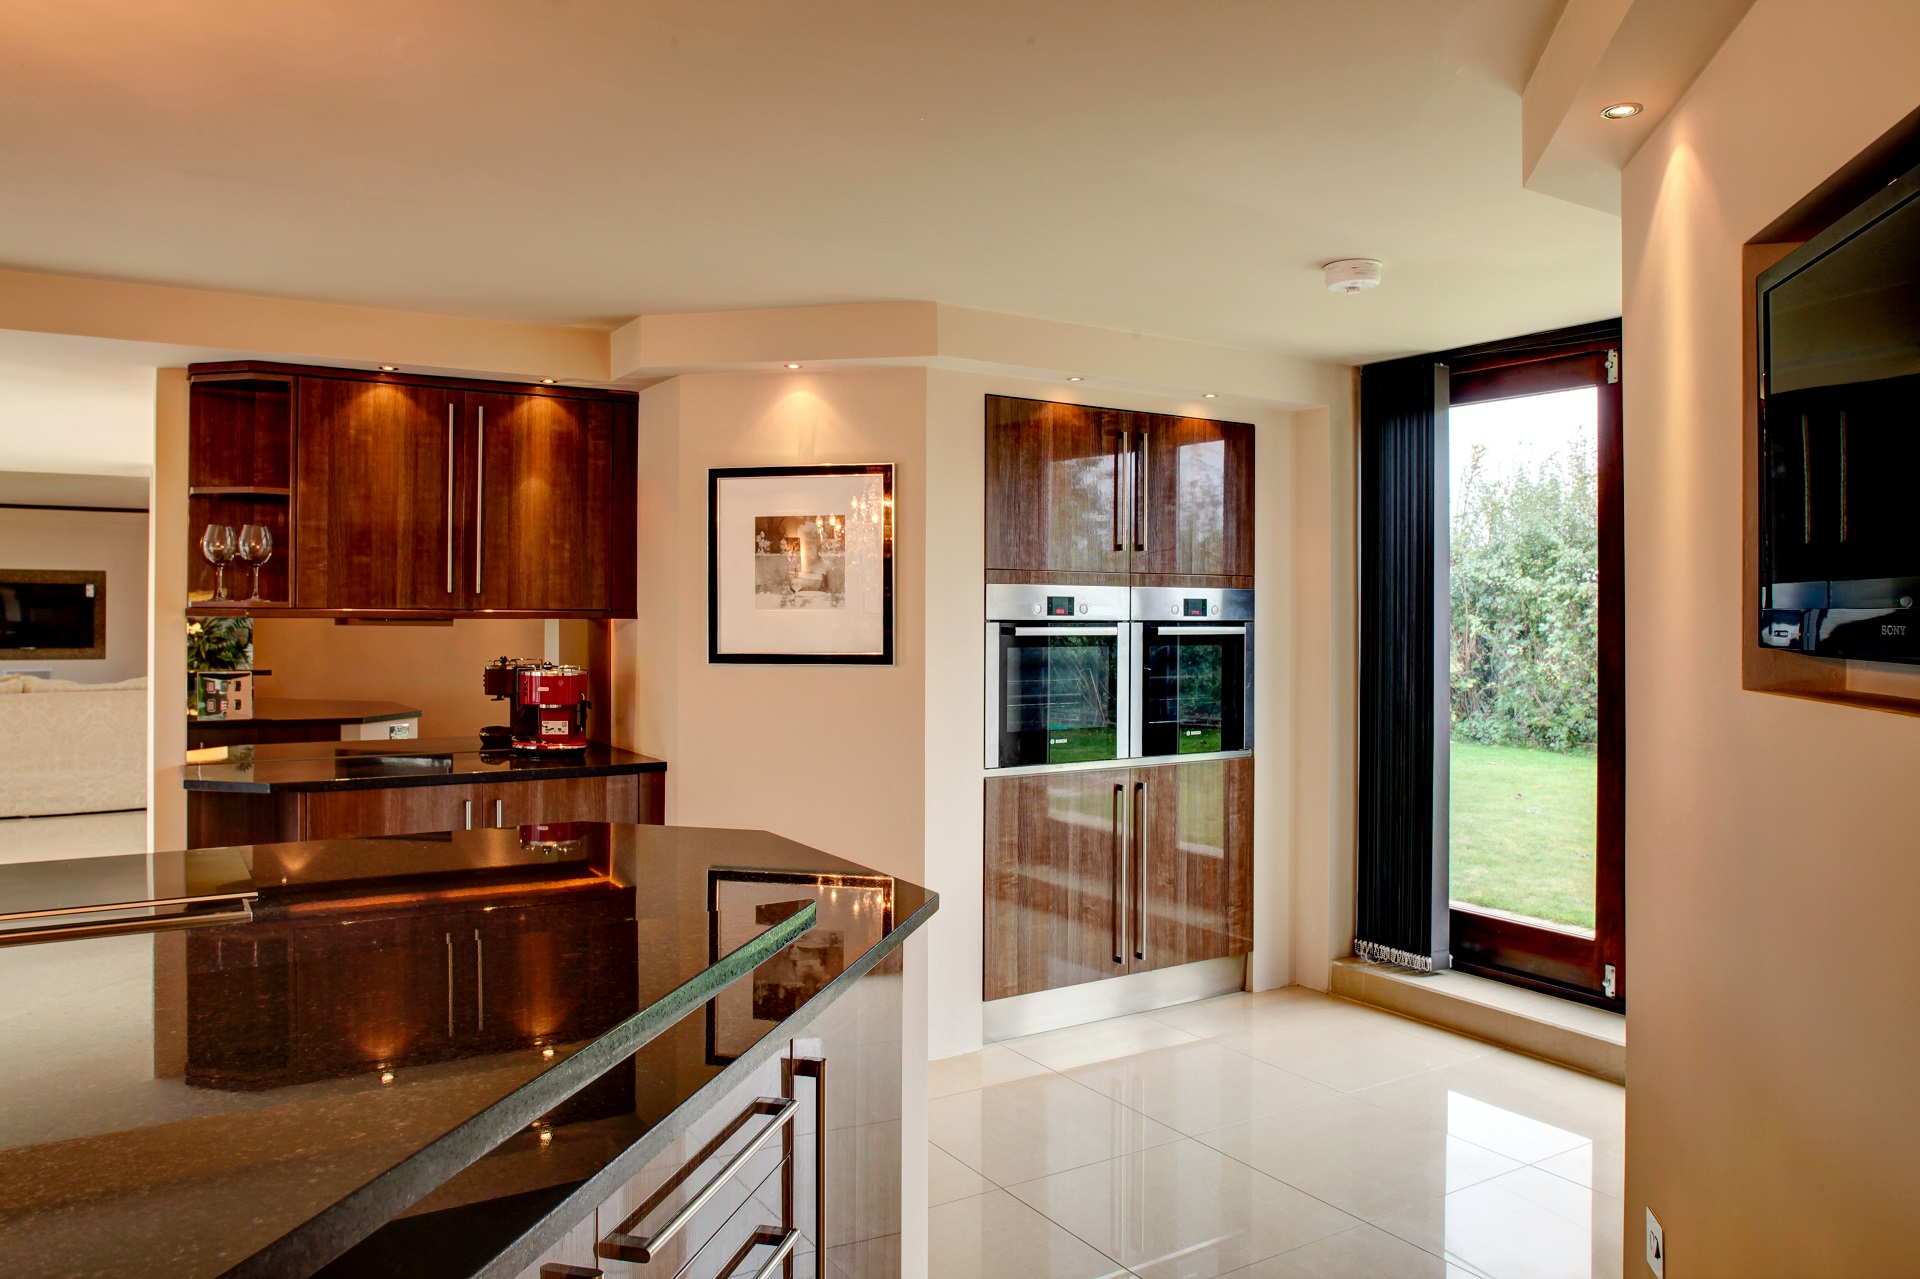 fern hill, nottingham, designer kitchen